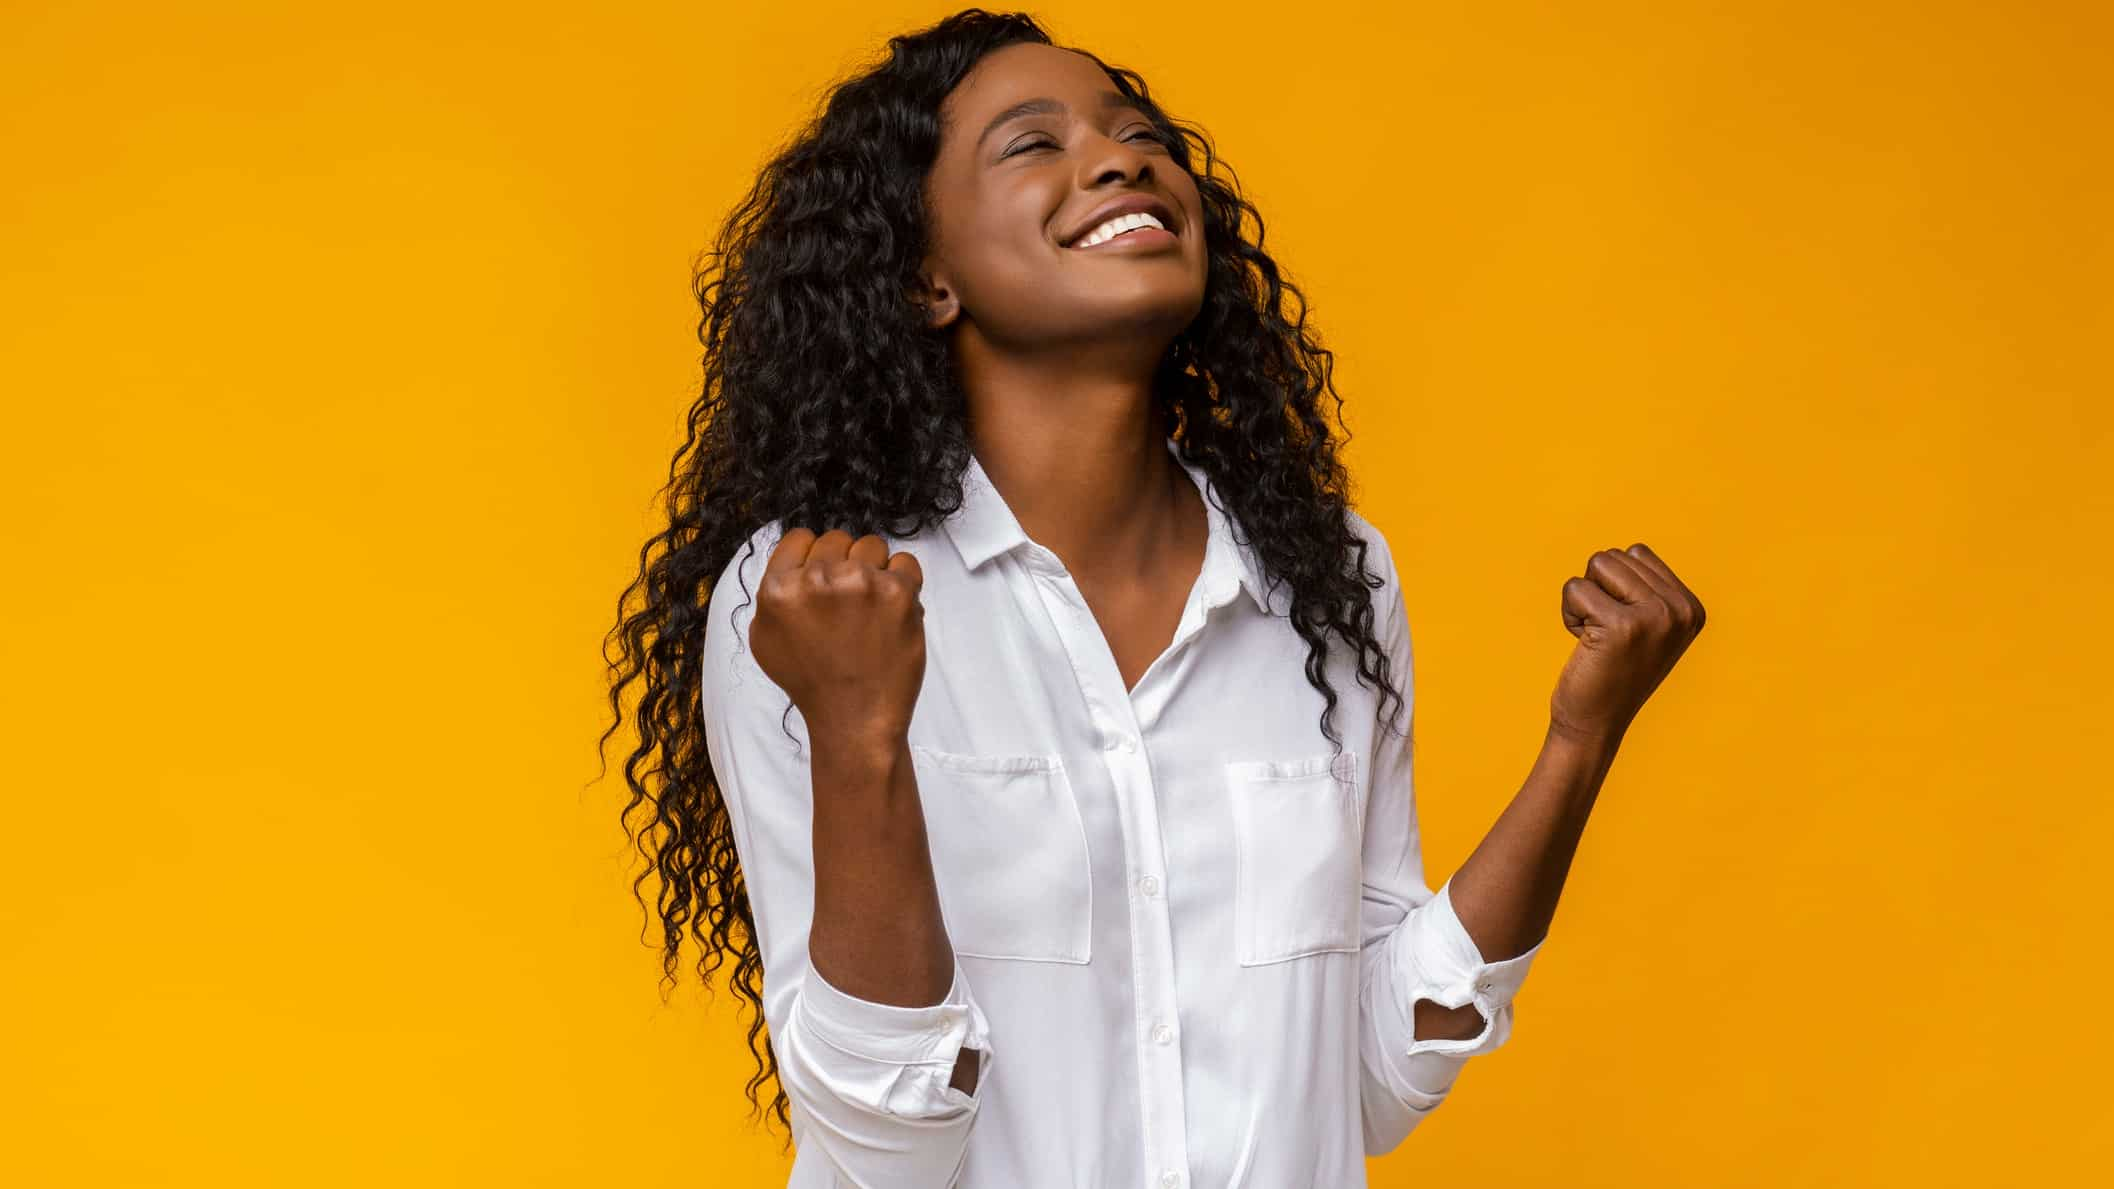 A happy woman raises her face in celebration, indicating positive share price movement on the ASX